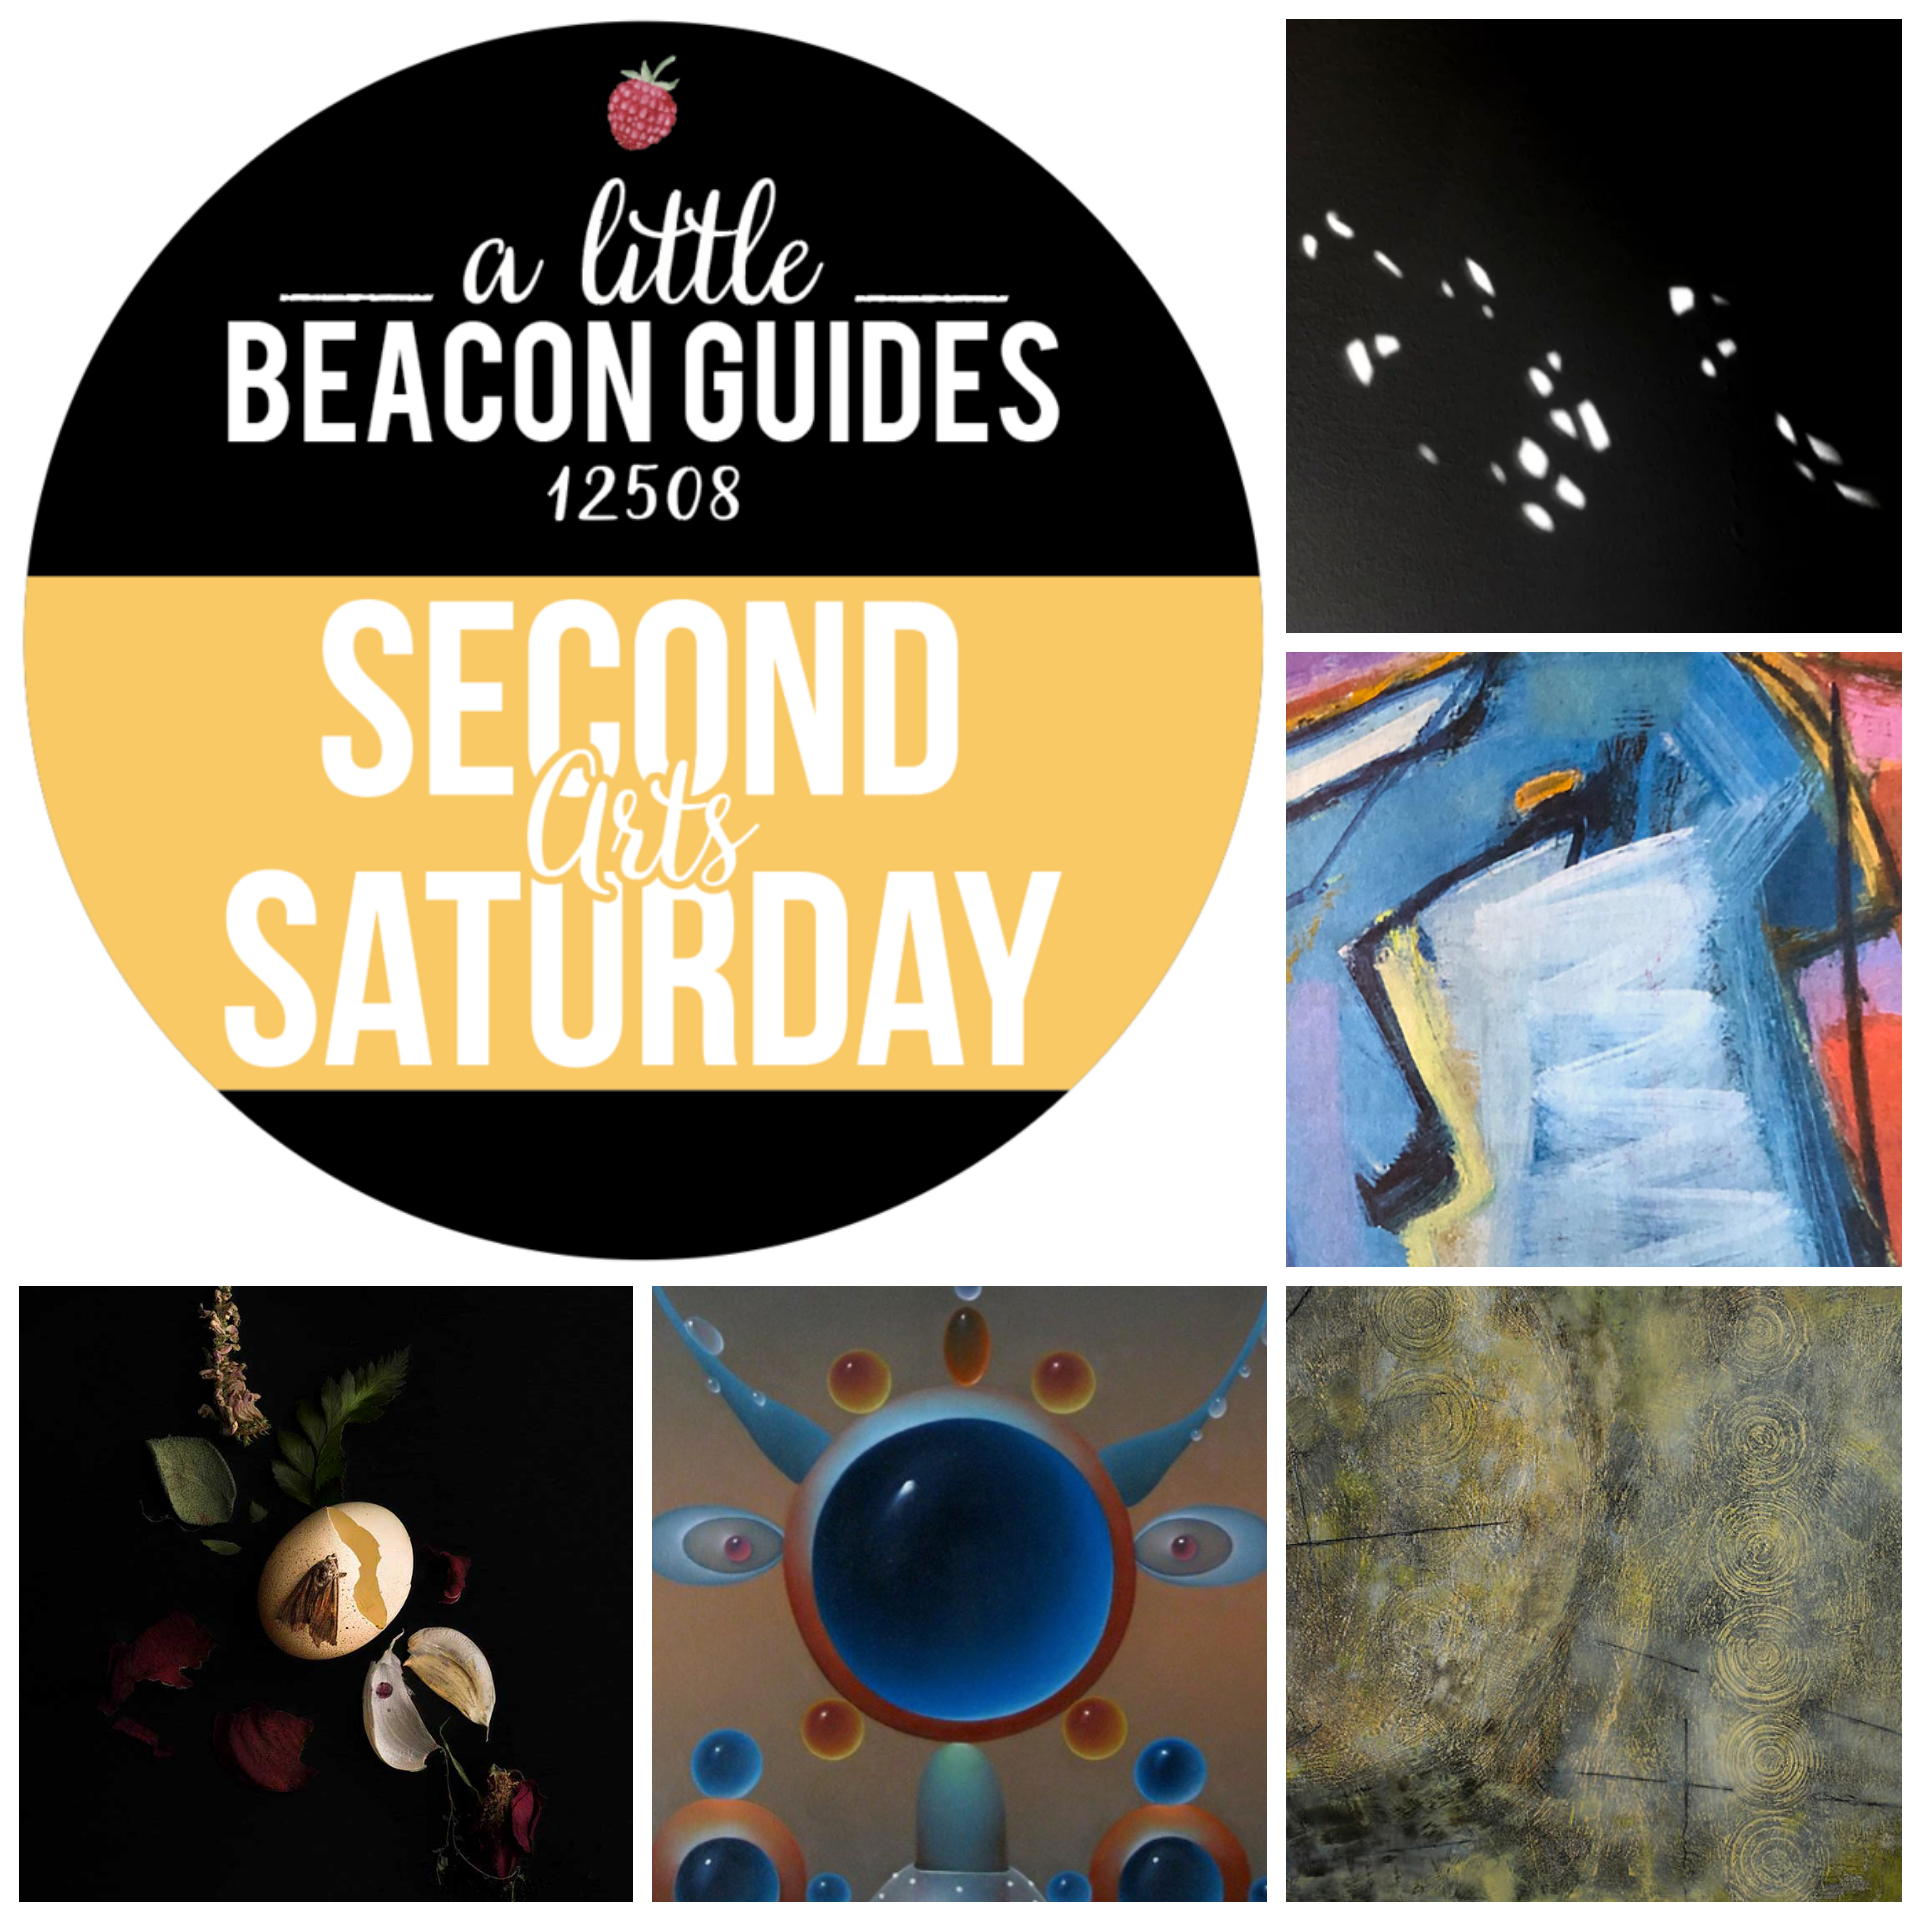 Happy Second Saturday for May 2019! New shows are opening all around Beacon. Some of them include, clockwise from top right: Martin D. Fowler at Big Mouth Coffee Roasters; the Rain Taxi Review of Books at Photo Book Works; Alessandro Keegan at Mother Gallery; and Meghan Spiro at Hudson Beach Glass.